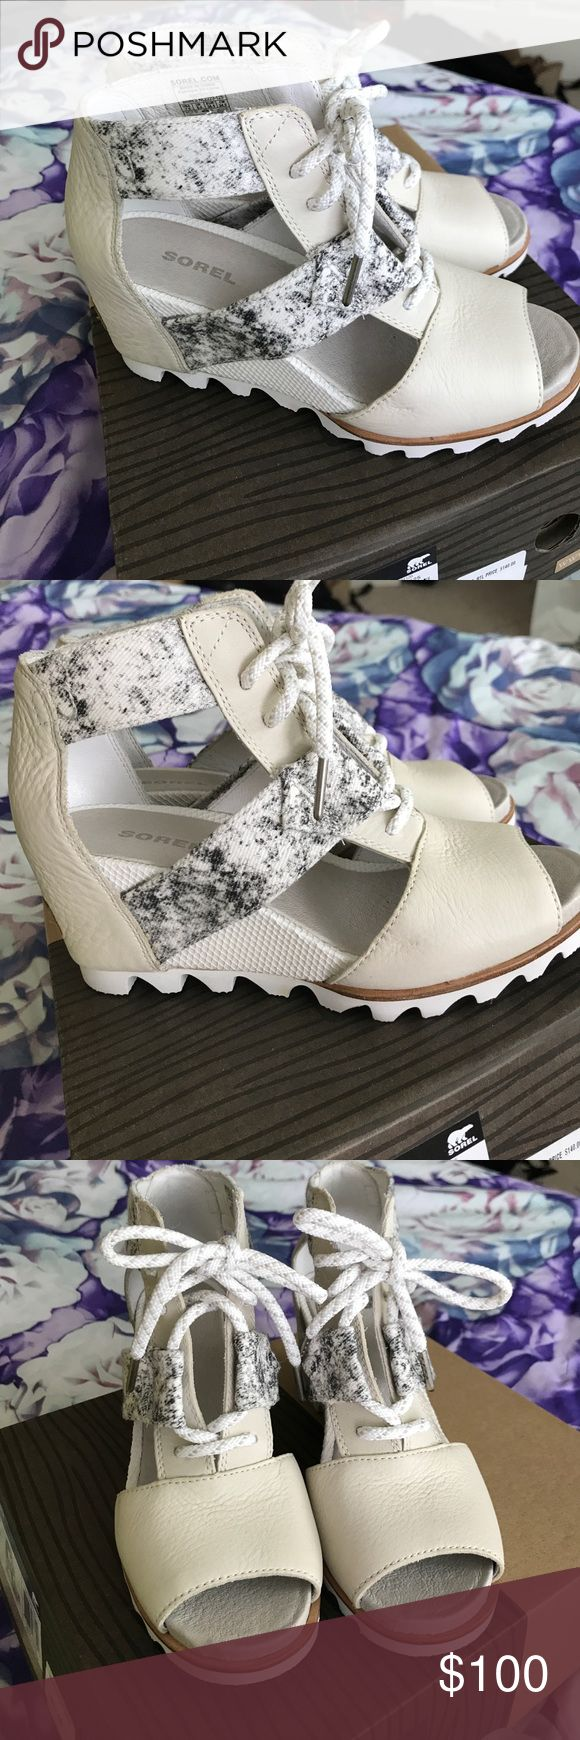 Sorel Joanie Lace Wedges in Sea Salt Stone Size 7.5 new never worn super comfortable sandle wedges! Goes well with skinny jeans or dresses. Sorel Shoes Wedges